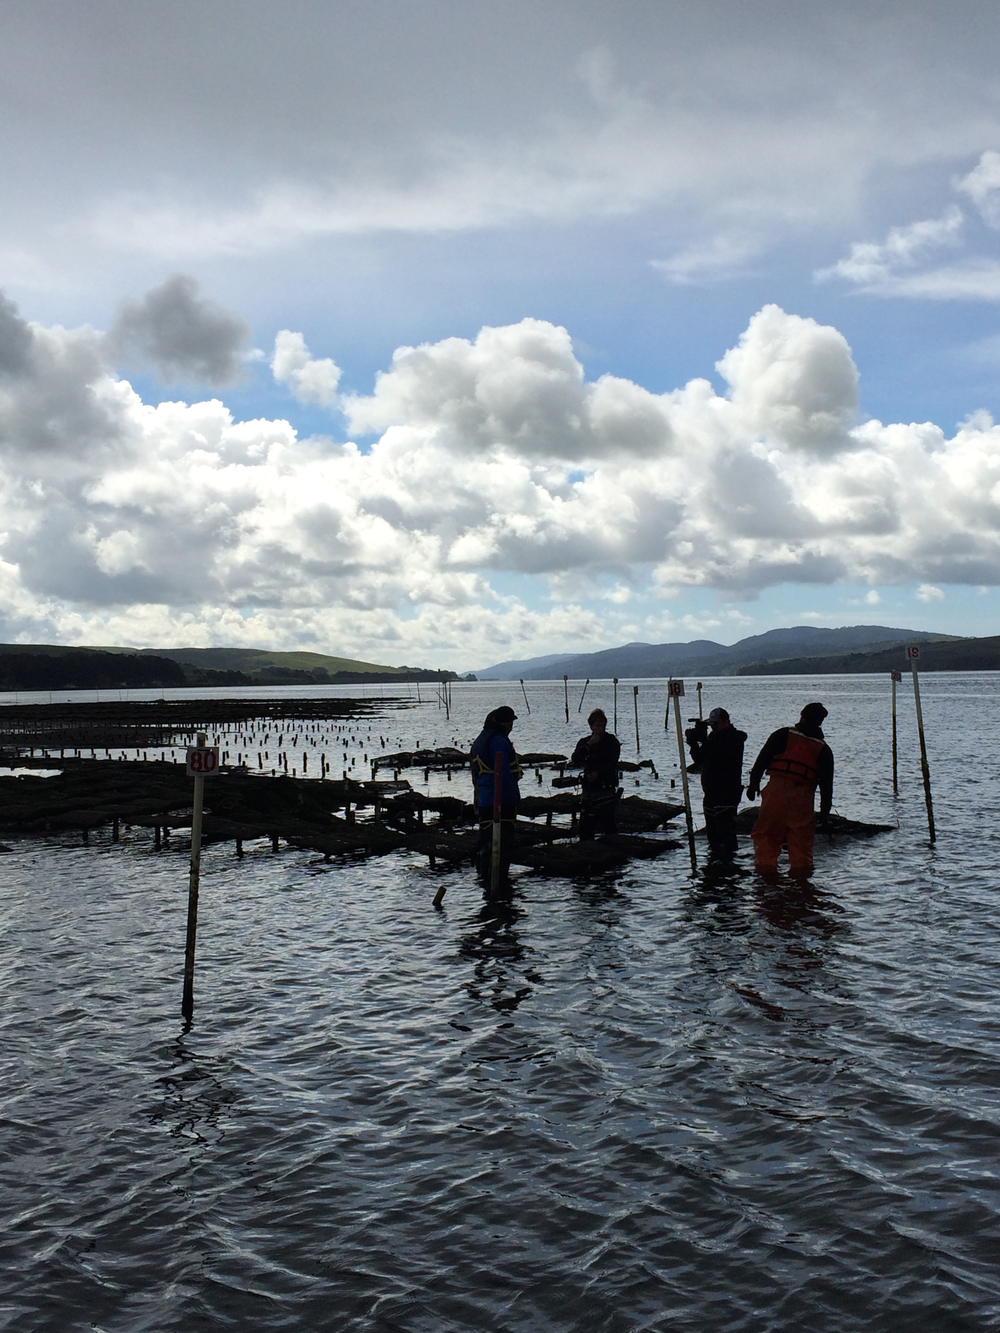 Out on the water in Tomales Bay, with partners from Hog Island Oyster Co.